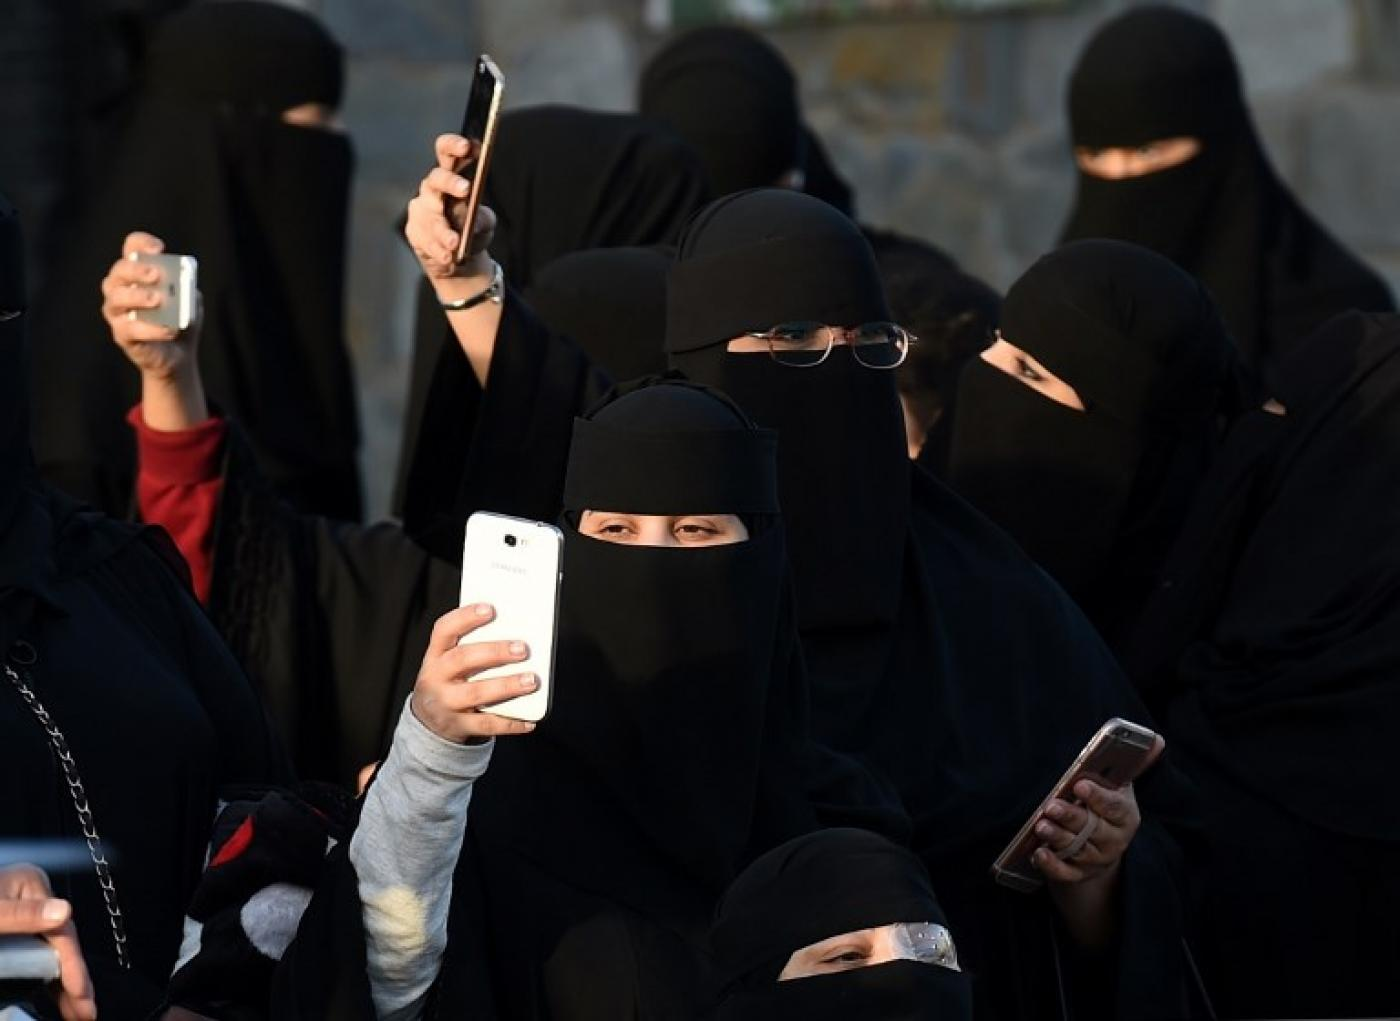 Apple and Google Urged to Remove Saudi App 'Absher' for Tracking Women